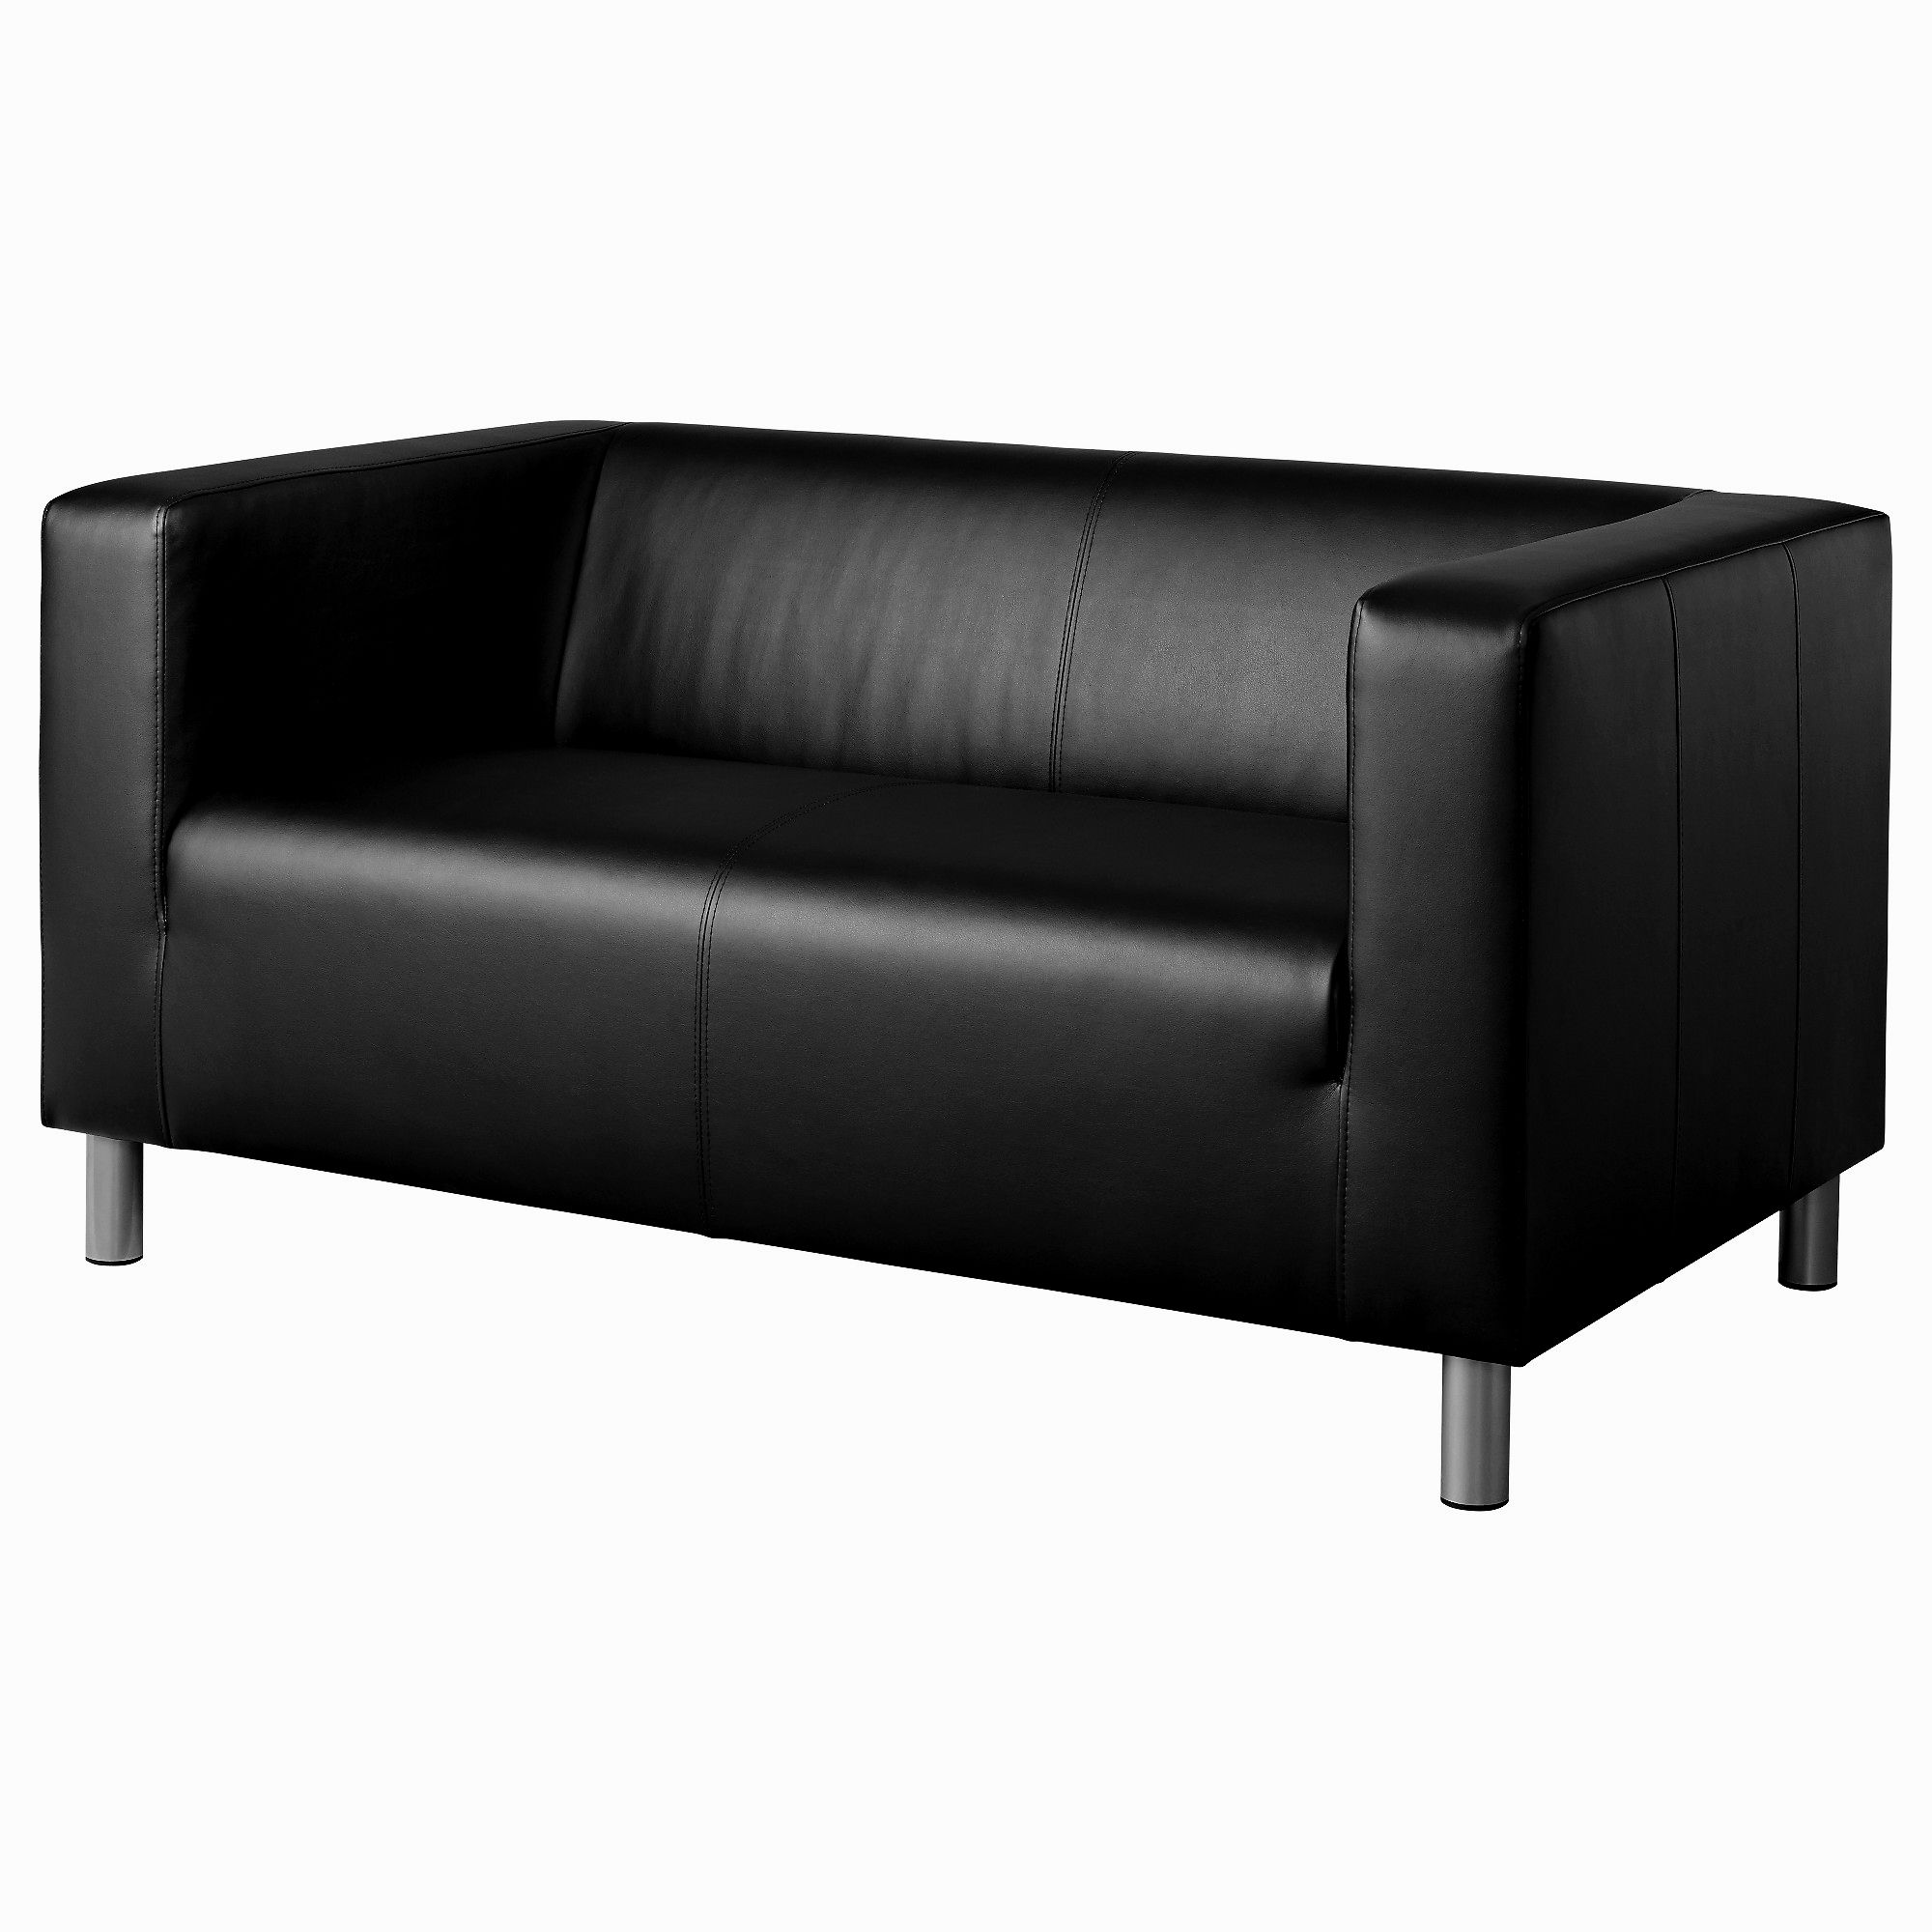 modern 2 seater recliner sofa photo-Sensational 2 Seater Recliner sofa Online